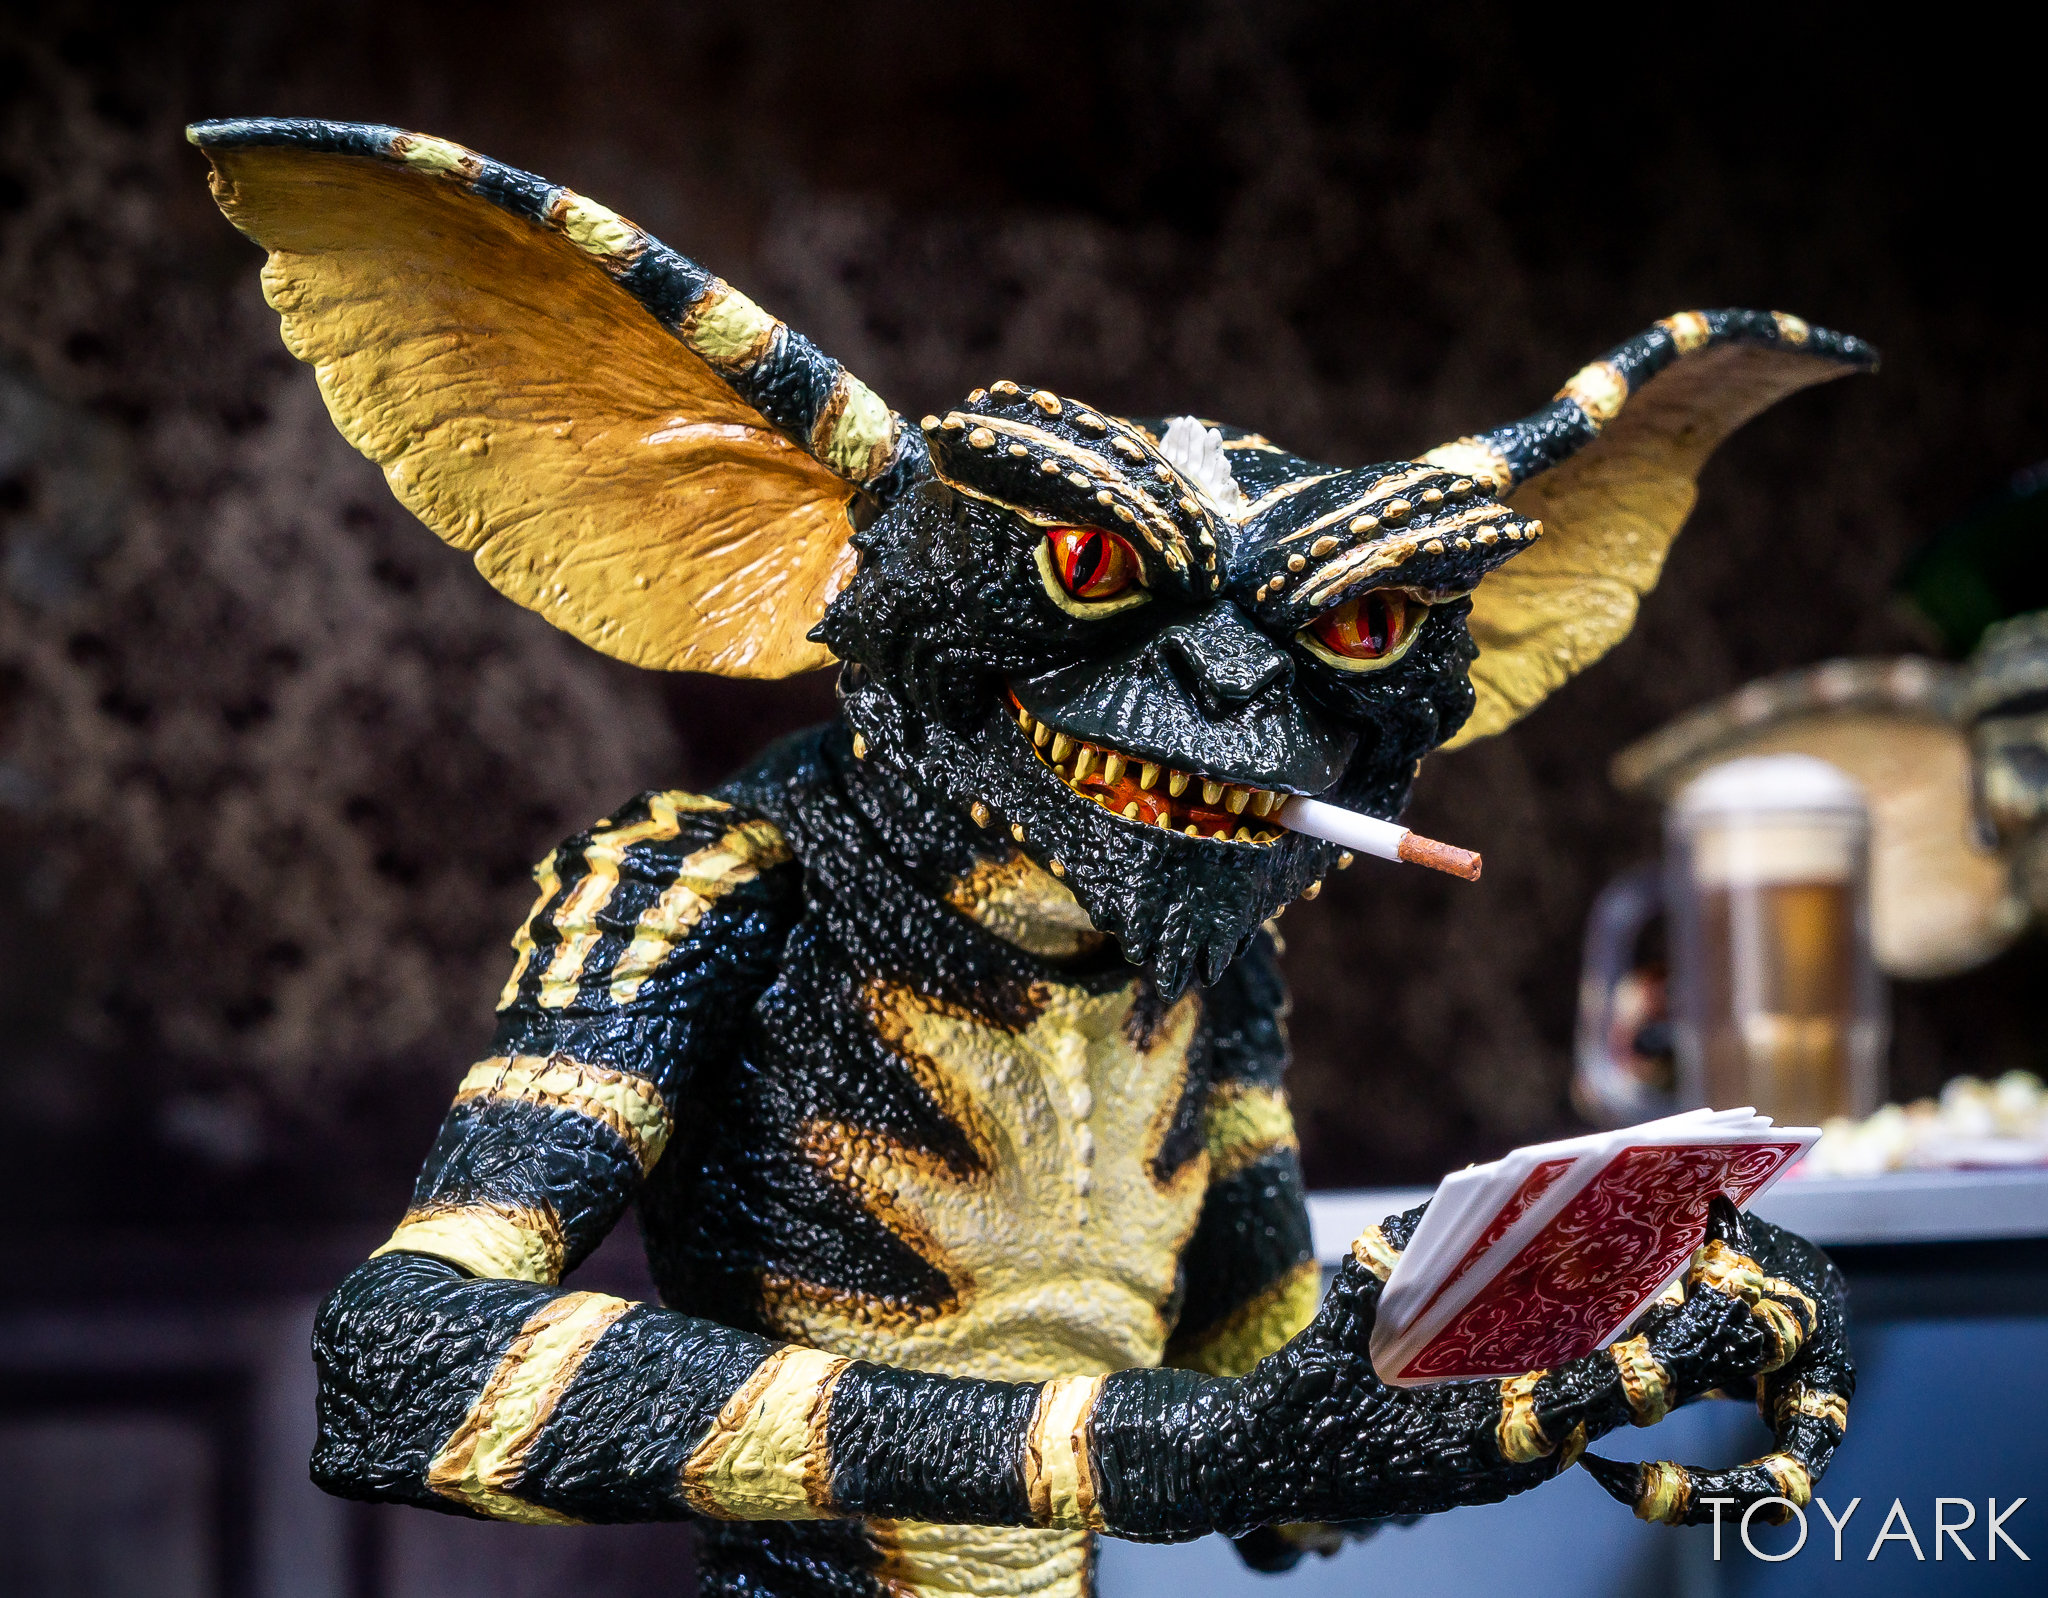 https://news.toyark.com/wp-content/uploads/sites/4/2018/11/Ultimate-NECA-Gremlin-Figure-041.jpg